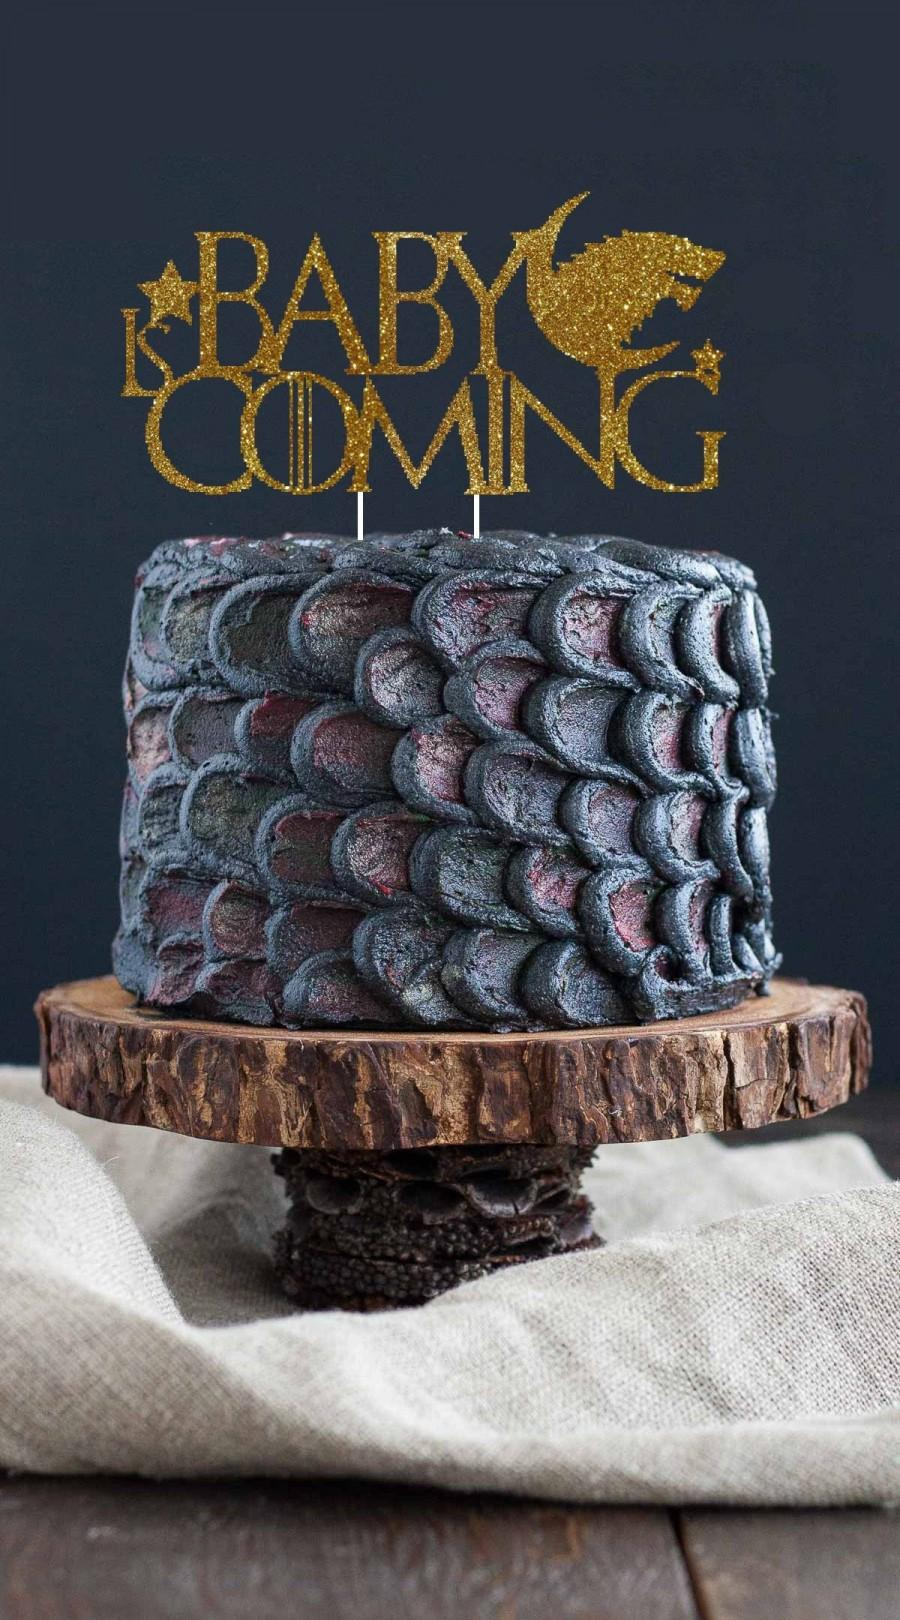 Baby Is Coming Stark Game Of Thrones Baby Shower Cake Topper Gender Reveal Cake Topper Game Of Thrones 2925709 Weddbook